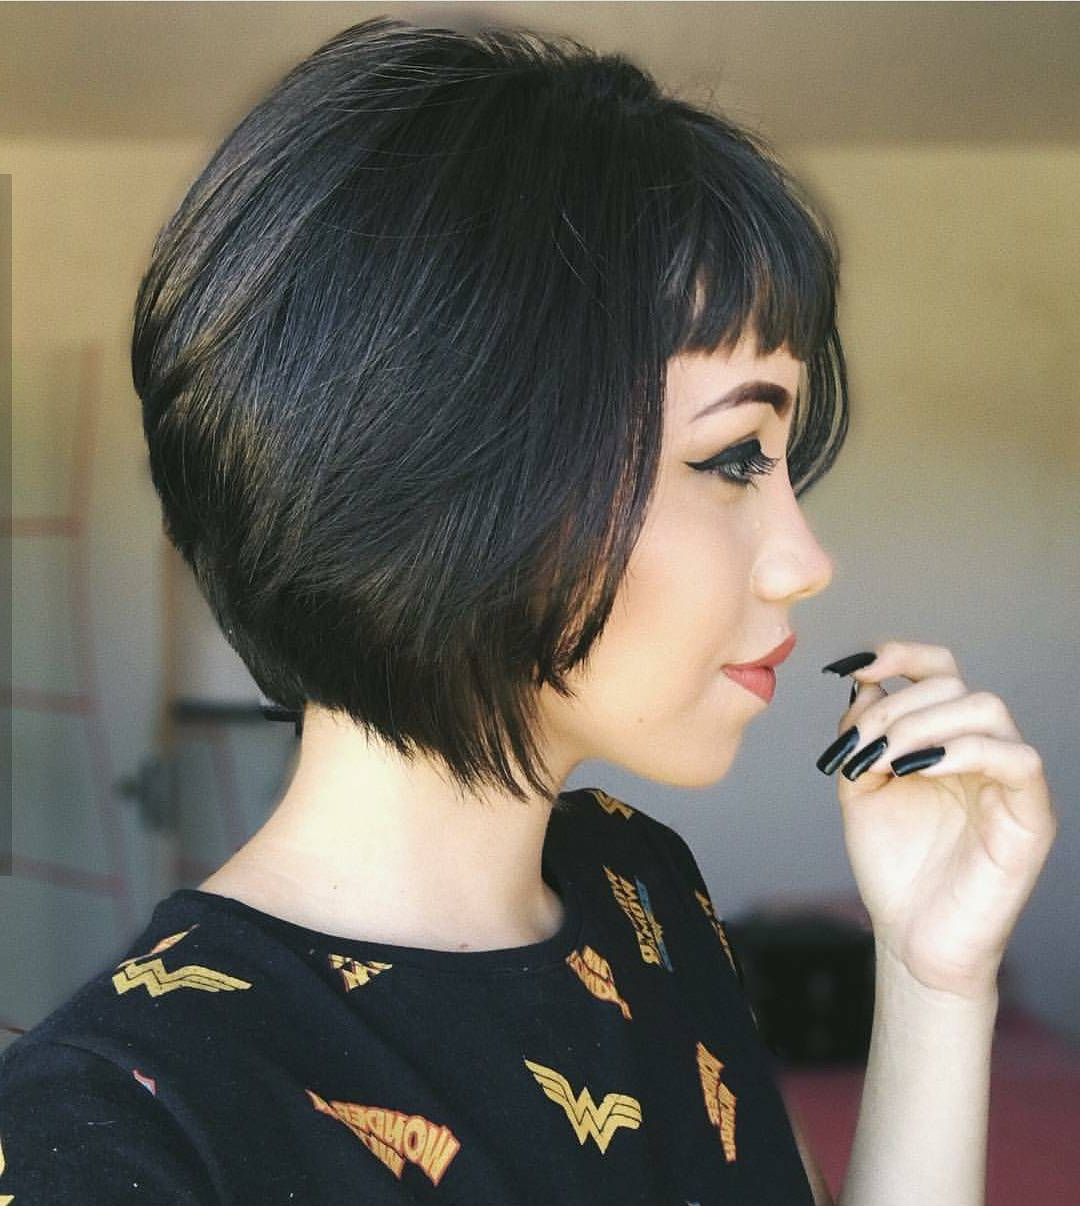 10 Chic Short Bob Haircuts That Balance Your Face Shape! – Short With Regard To Black Hairstyles Short Haircuts (View 25 of 25)